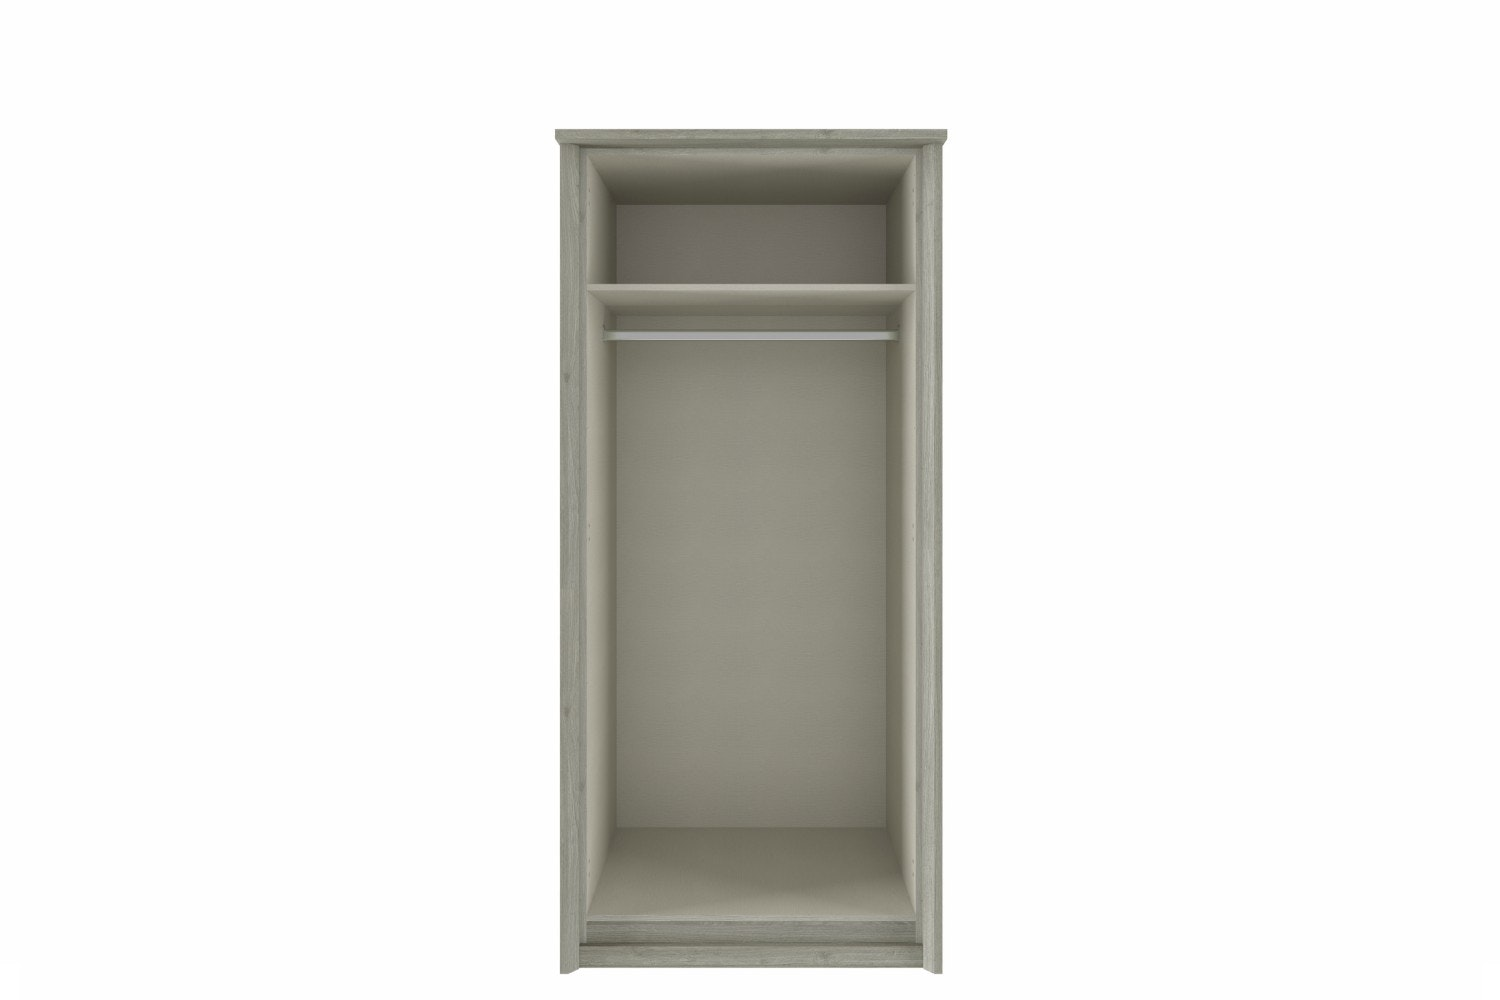 Niko Wardrobe | 2 Doors | Washed Oak/White